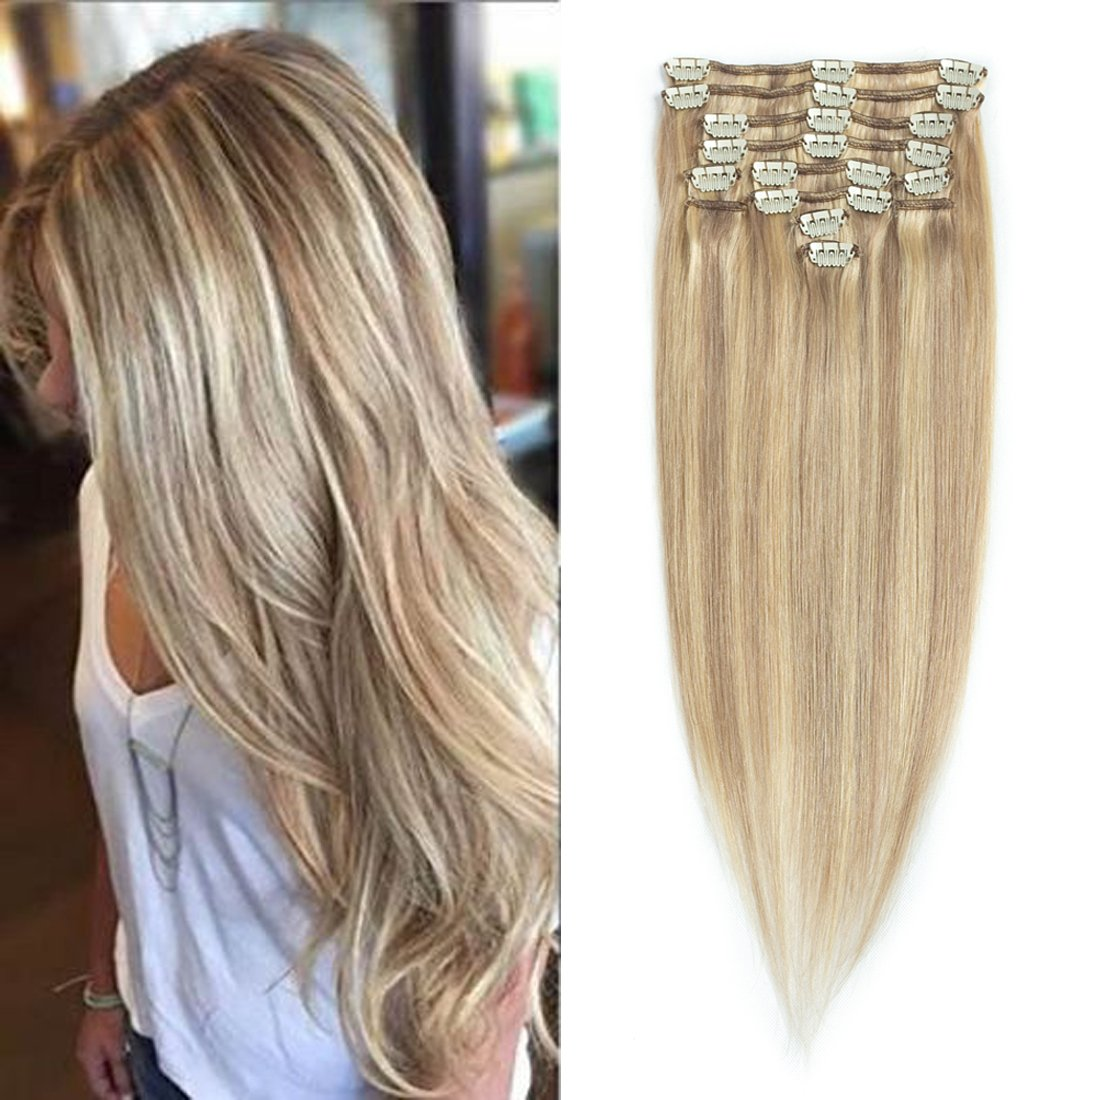 20 inch Ash Blonde/Bleach Blonde(#P18/613), Full Head Clip in Human Hair Extensions, High quality Remy Hair, Silky Straight clip hair Brazilian virgin Hair extensions. (12pcs/set, weighs 95g with 20 clips, 0.8g per clip) Xuchang Sizhuang